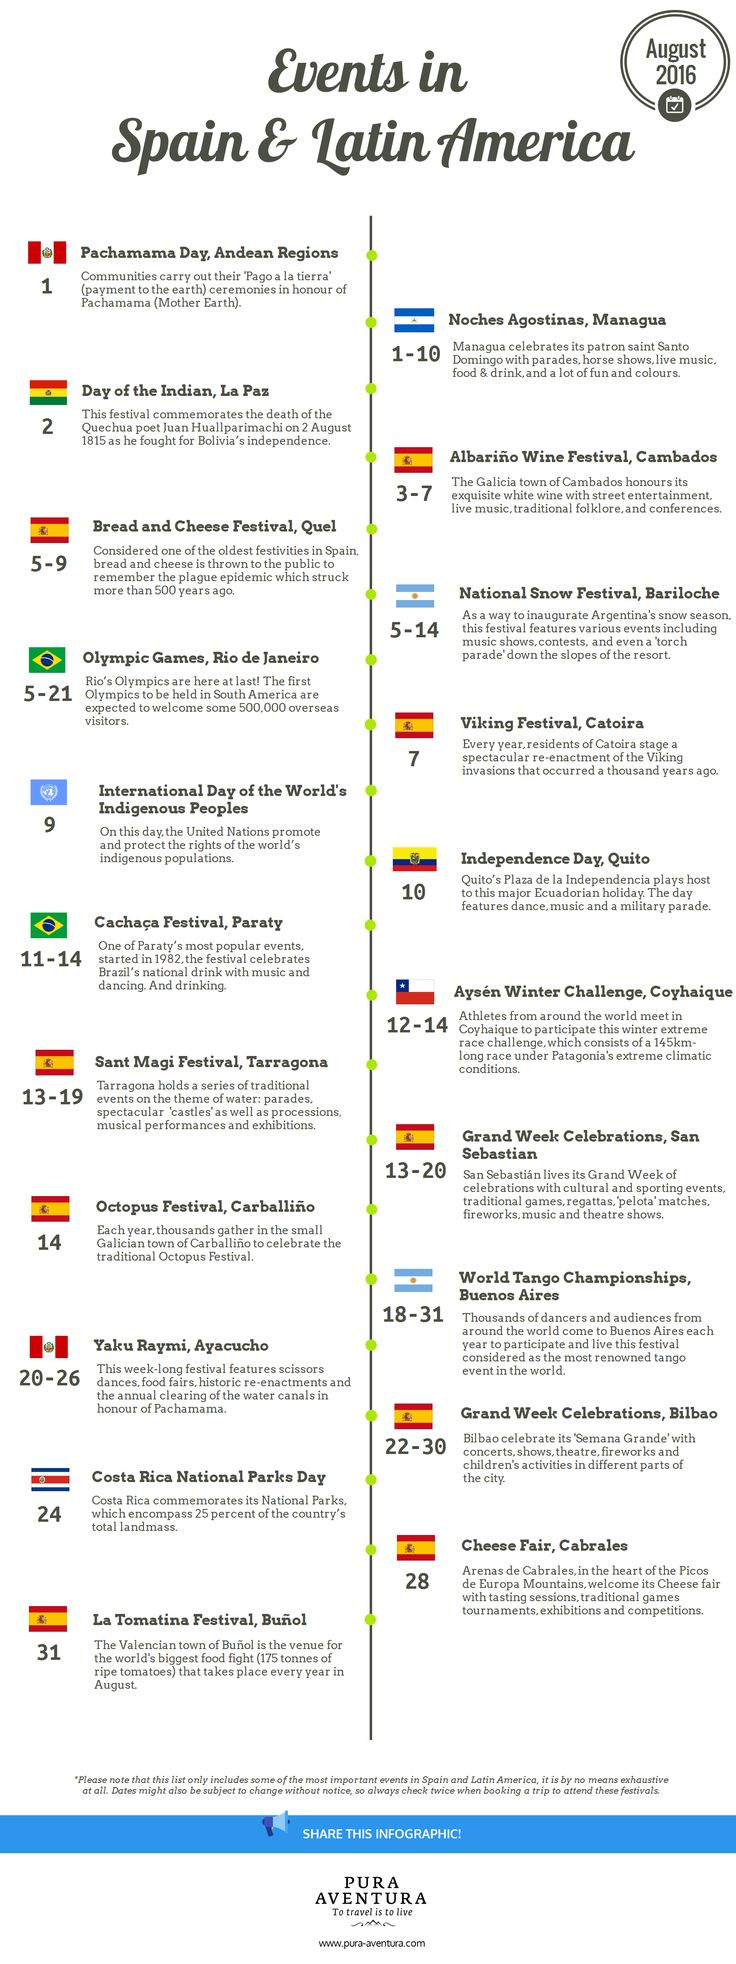 Find out more about the Events in Spain and Latin America during August 2016: https://www.pura-aventura.com/blog/events-in-spain-and-latin-america-august-2016/